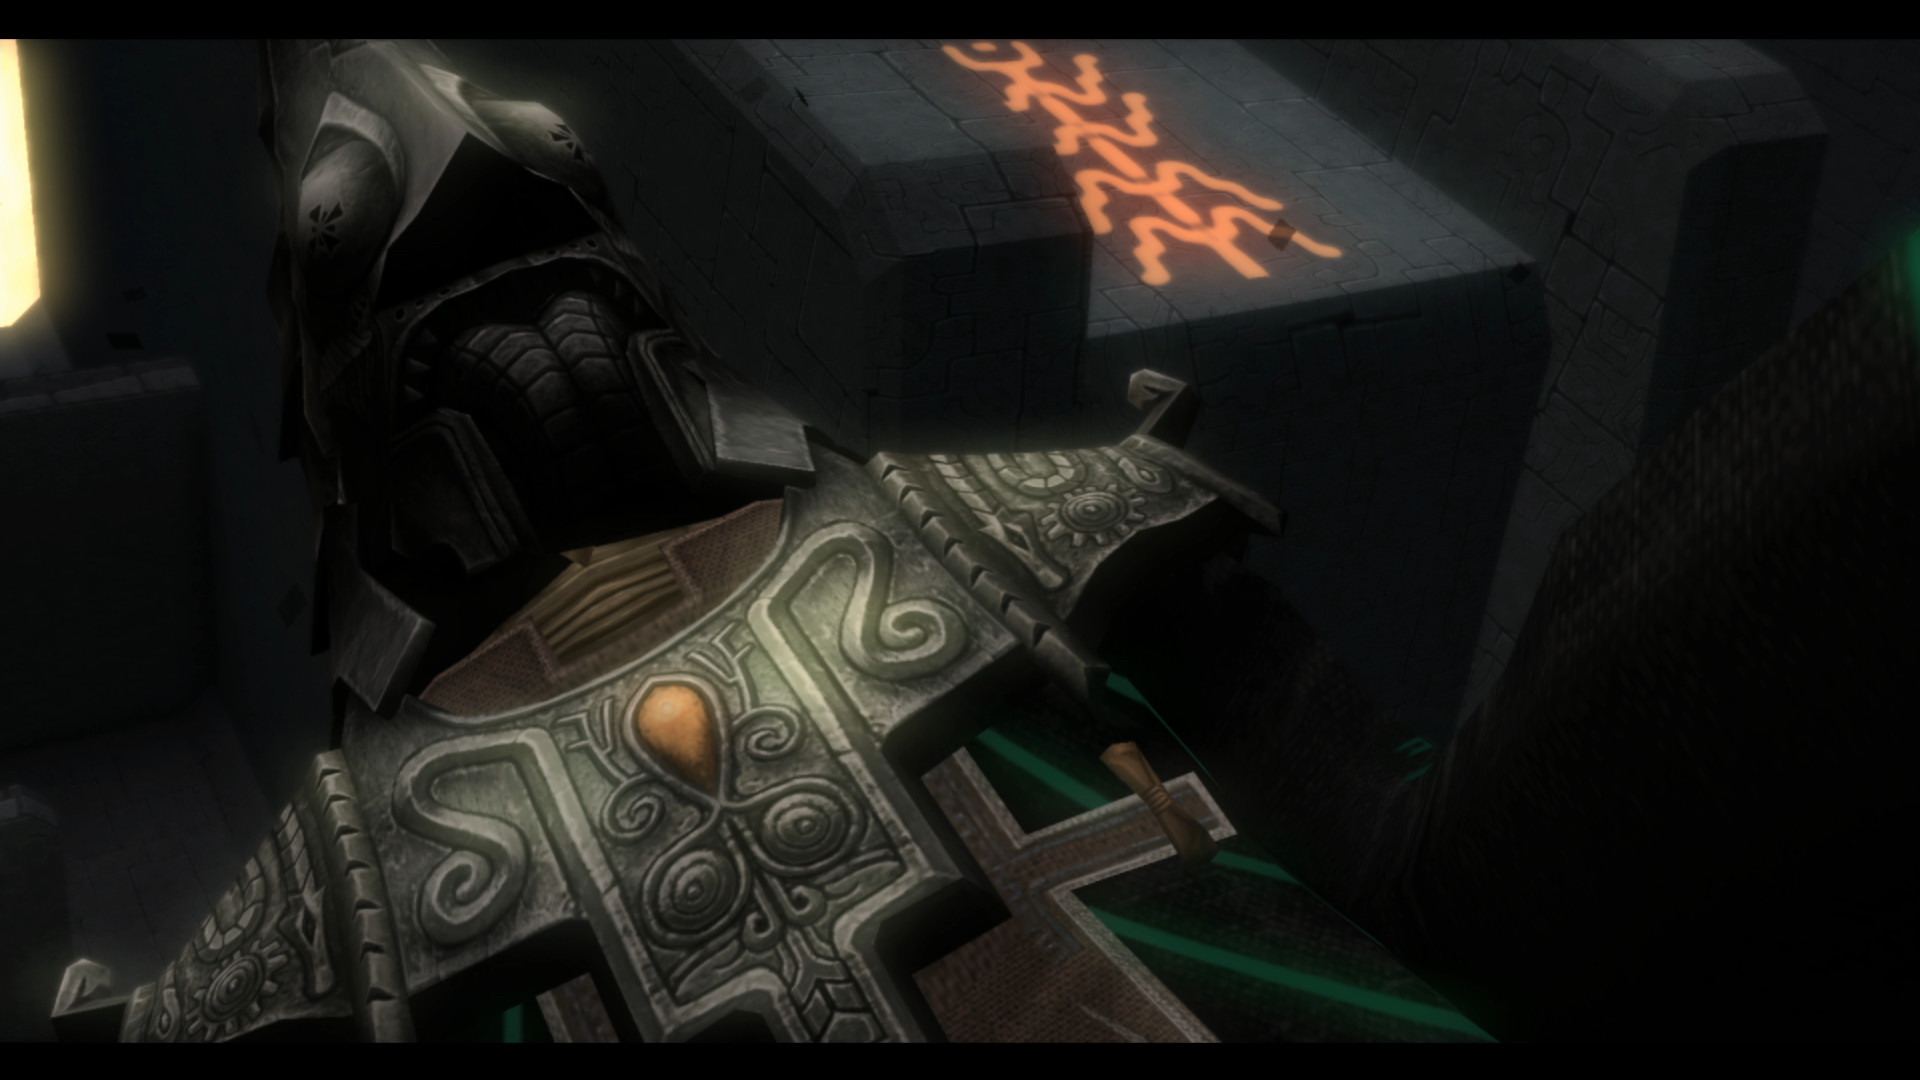 Check out the galleries below for new screenshots of Twilight Princess HD,  as well as a closer look at the Midna and Wolf Link Amiibo.